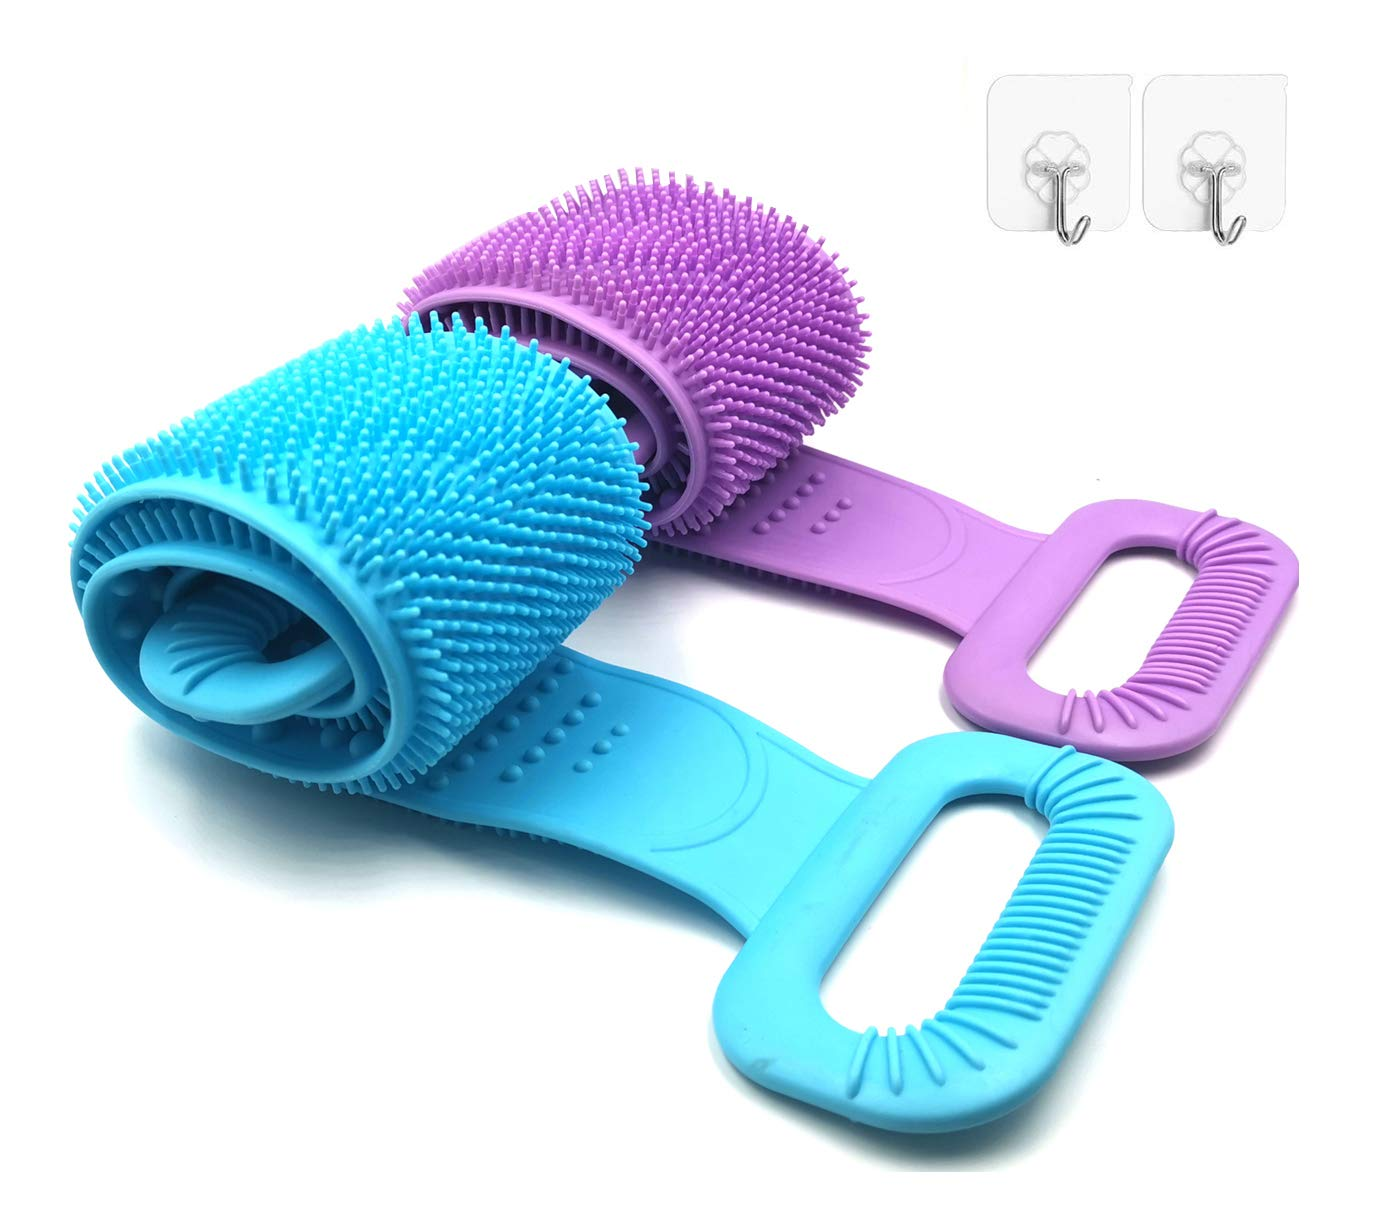 2 pcs silicone back scrubber for shower,back scrubber for shower for men and women,handle Body Washer, Deep Clean & Invigorate Your Skin (30in)